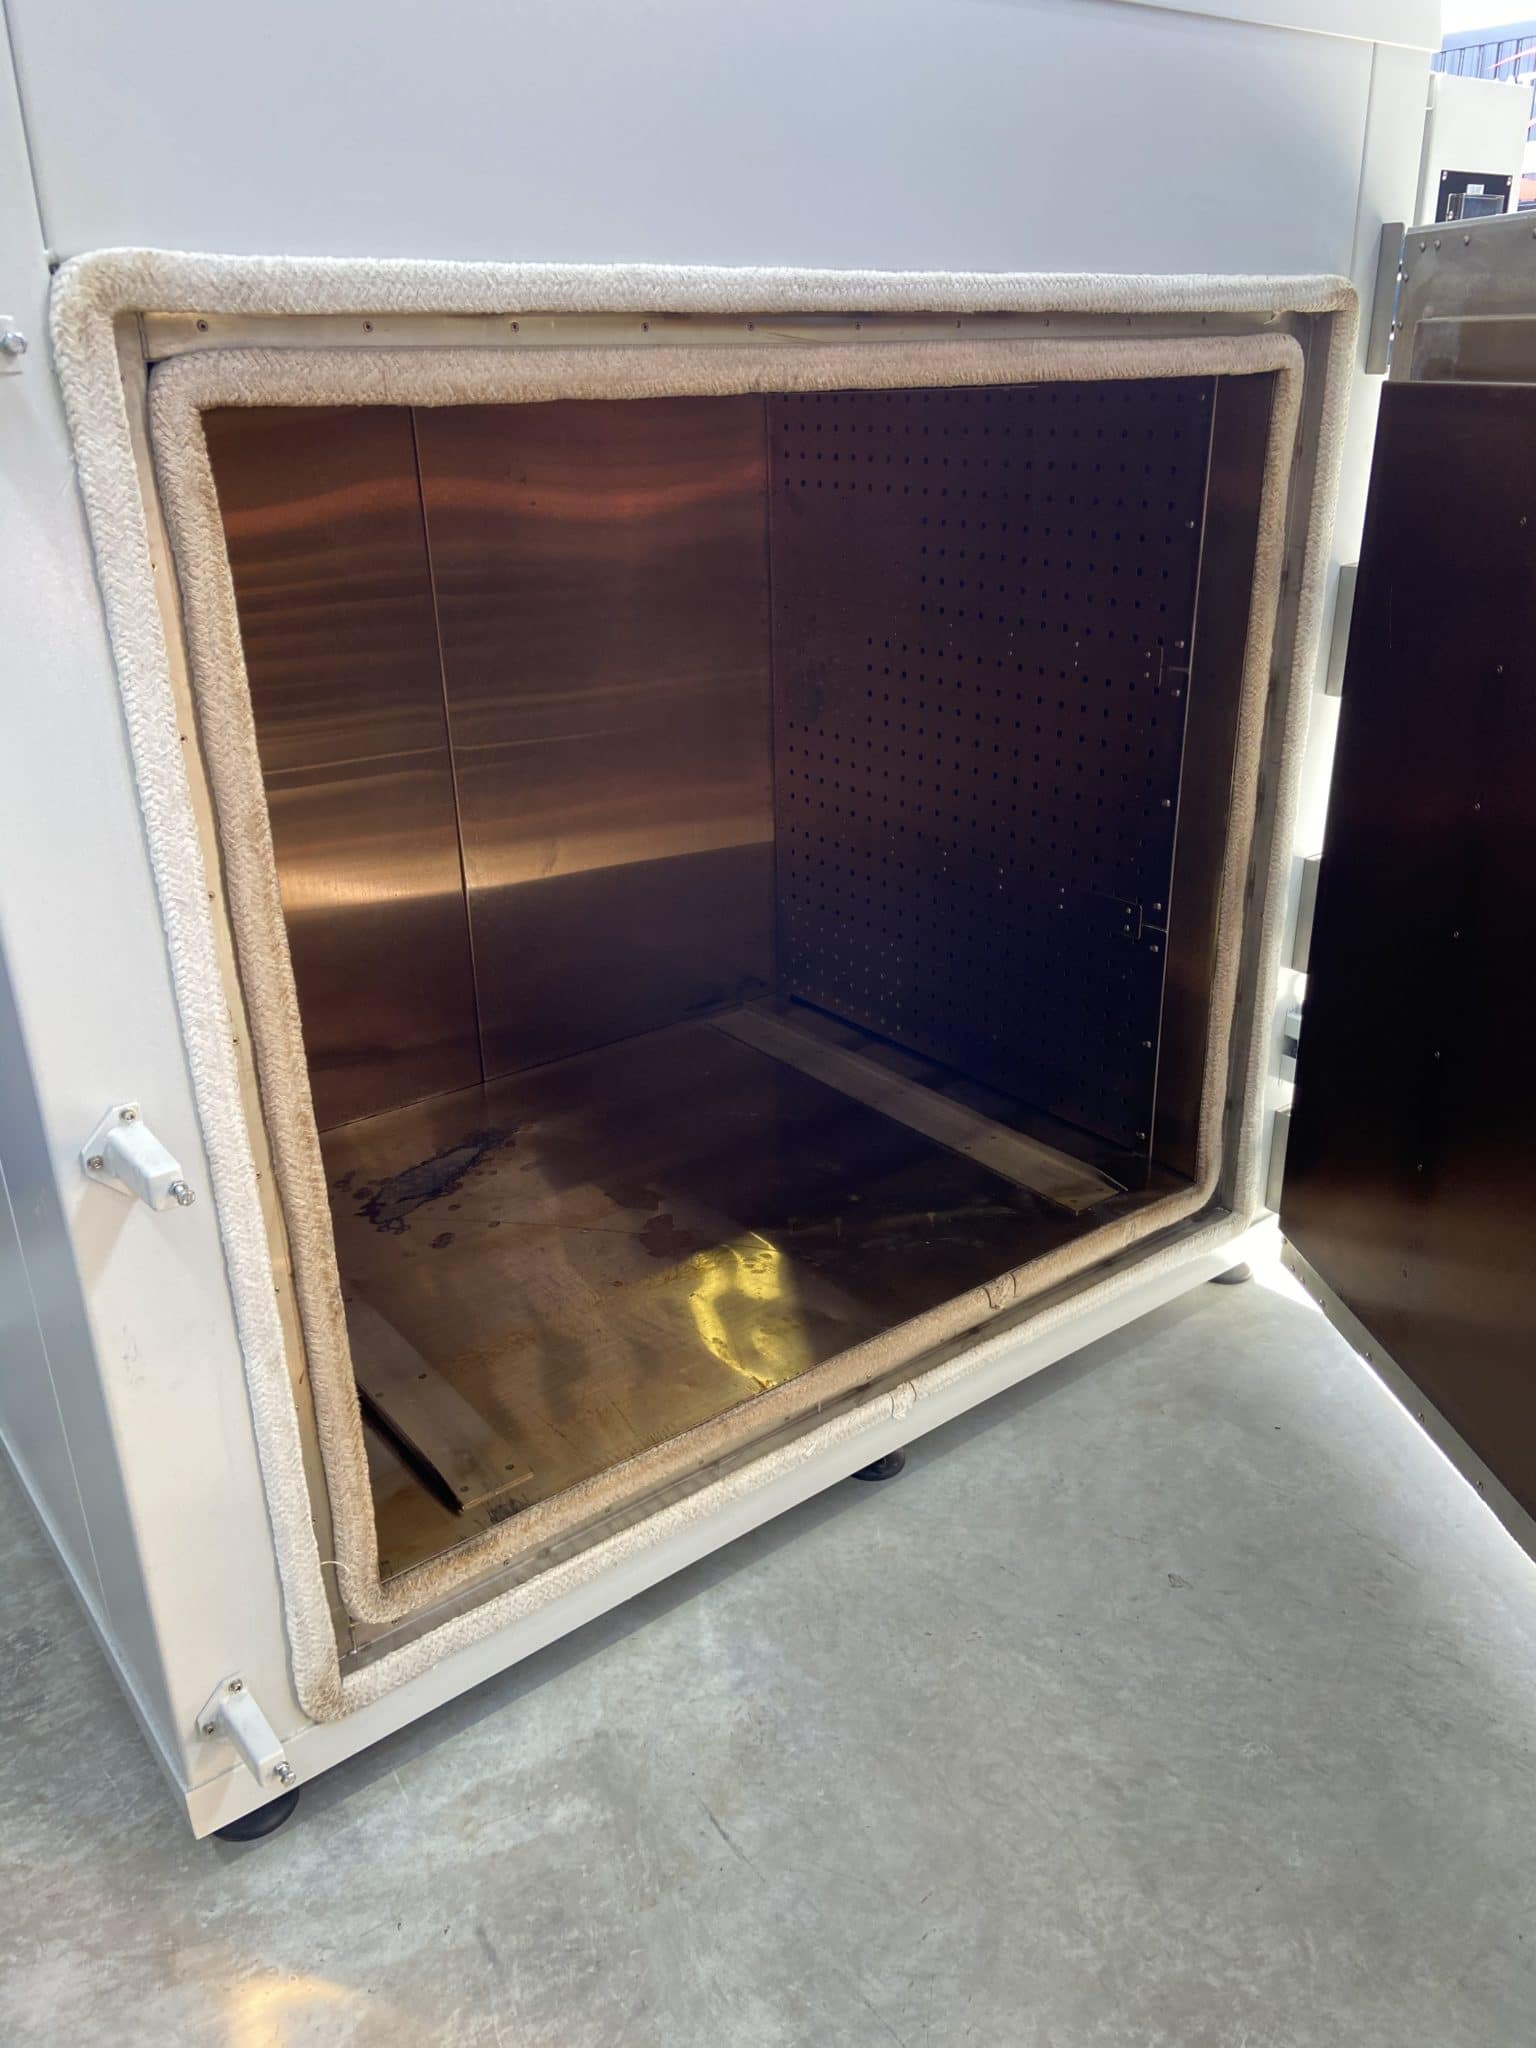 HSI HB 1700 Tempering Furnace Interior